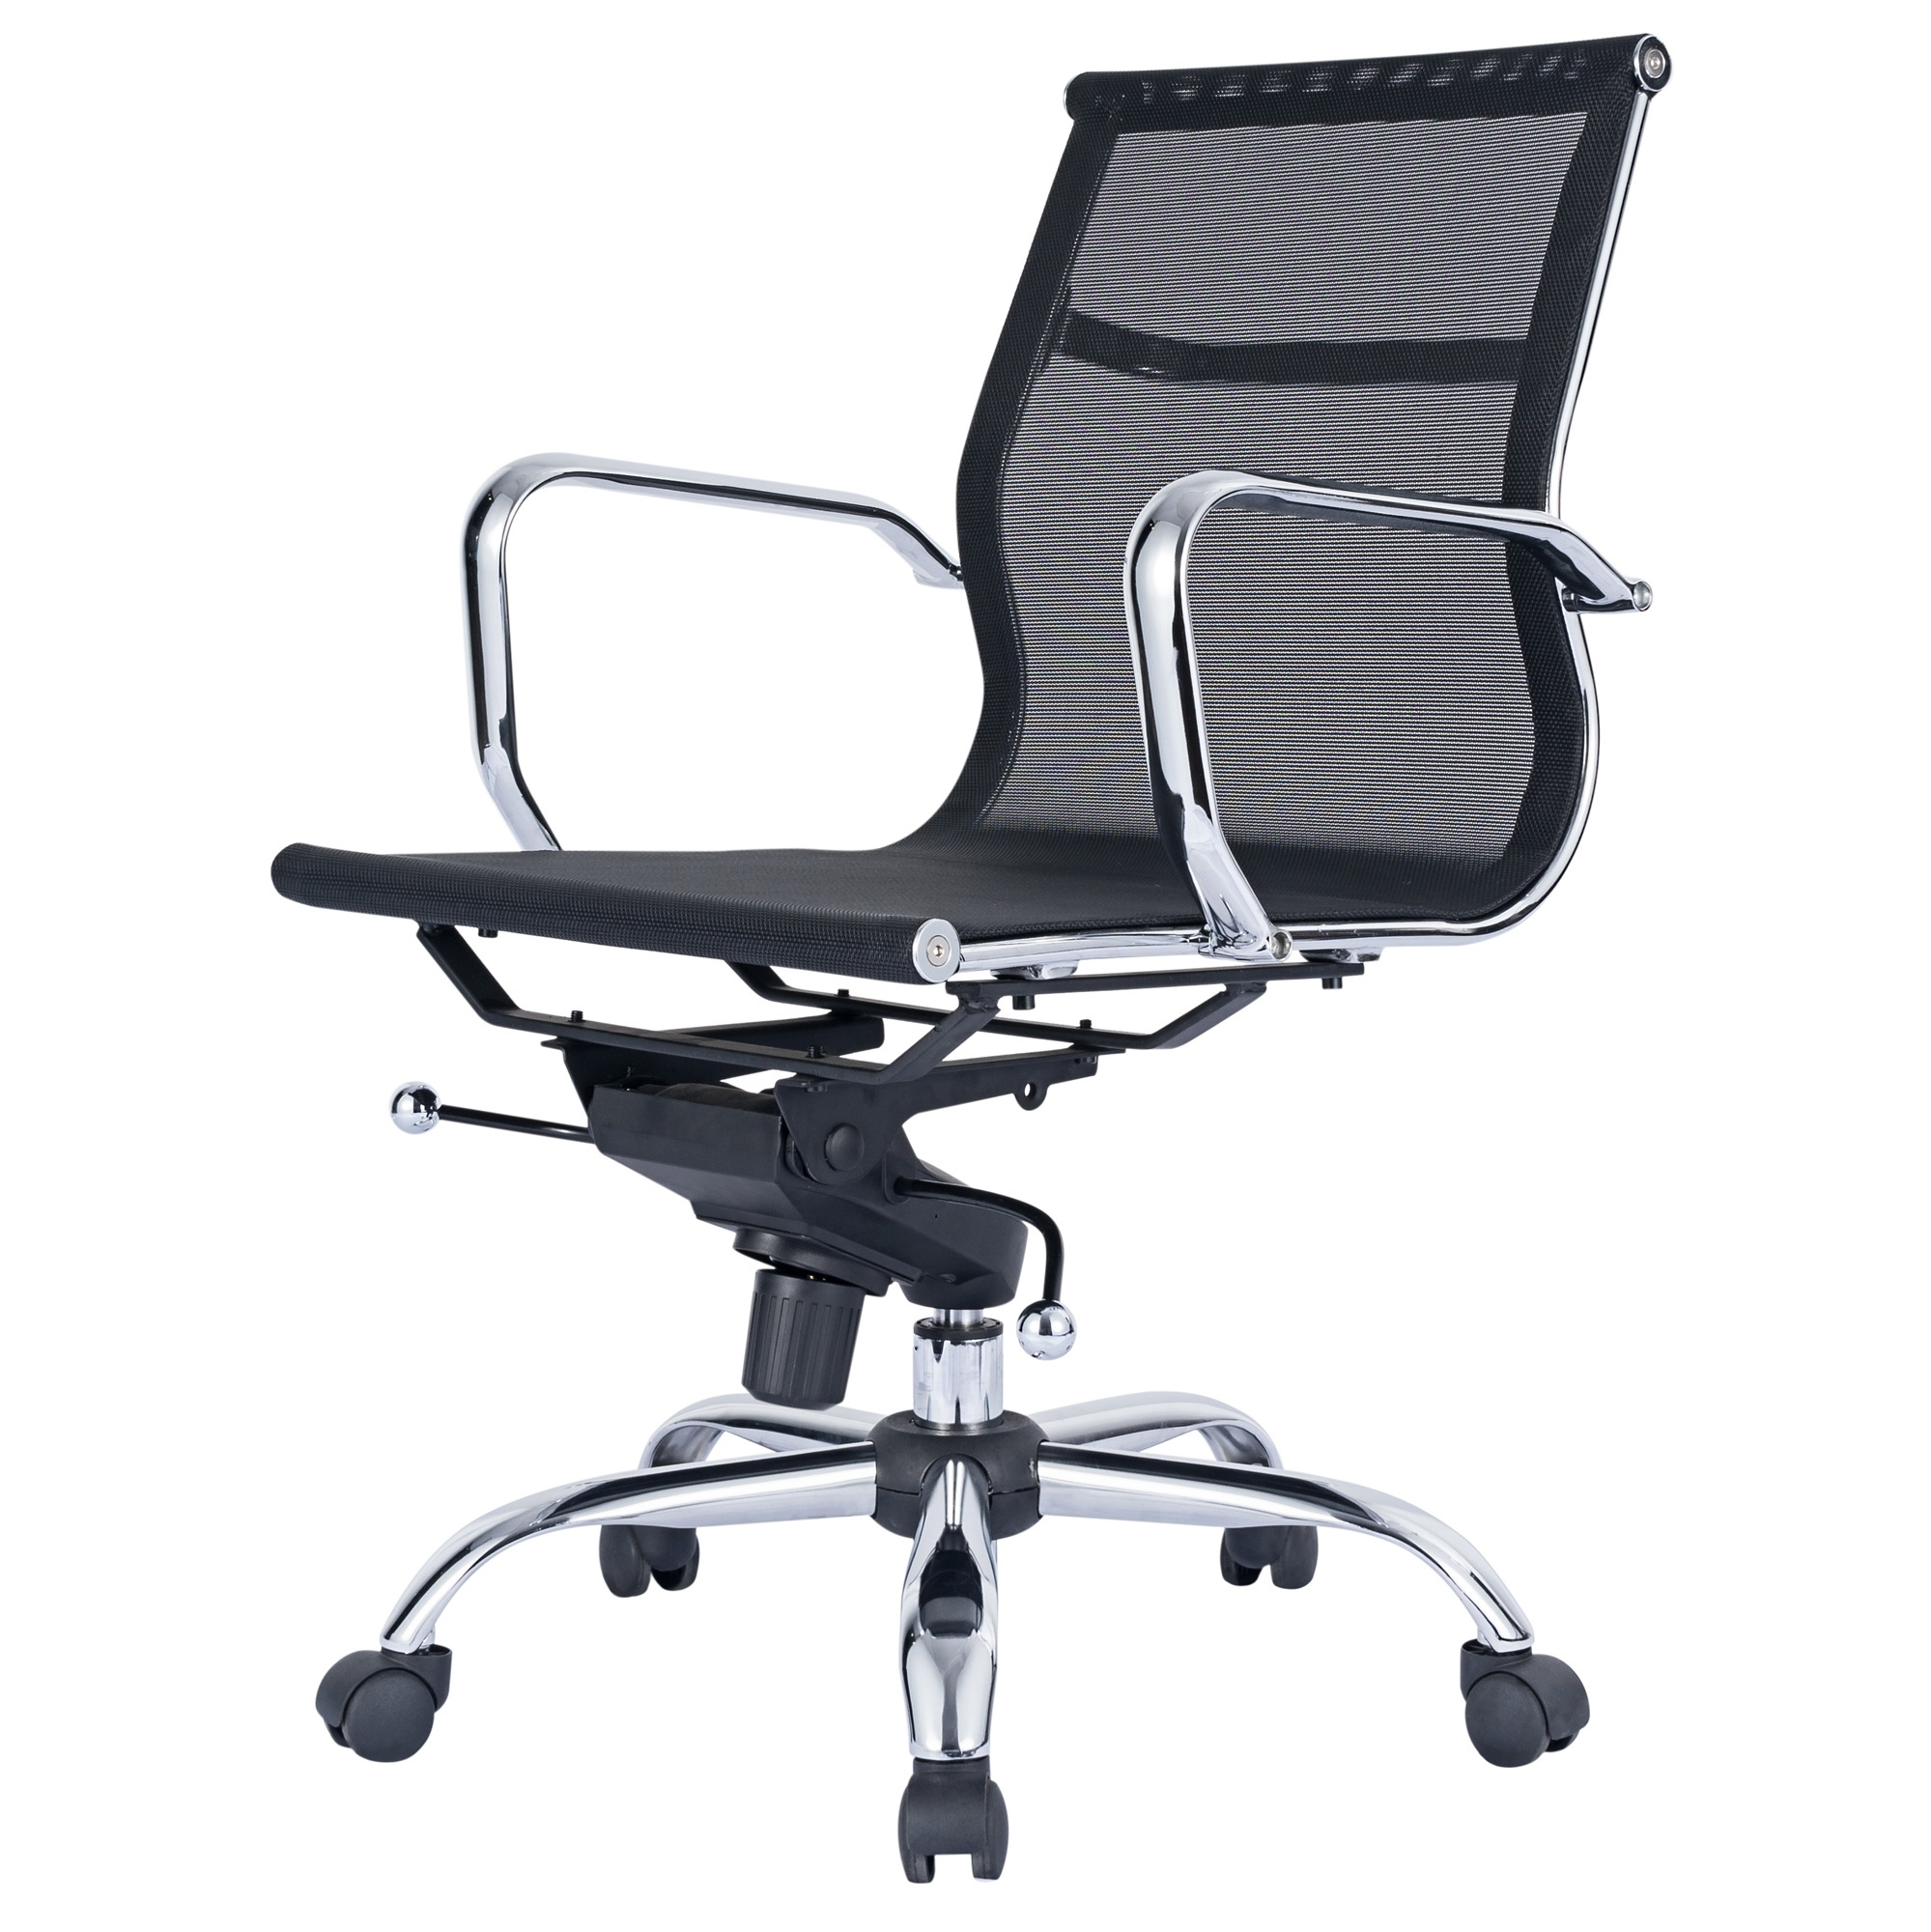 Popular Furniture : Office Chairs Without Arms Office Chair Back Buy Within Executive Office Chairs Without Arms (View 10 of 20)